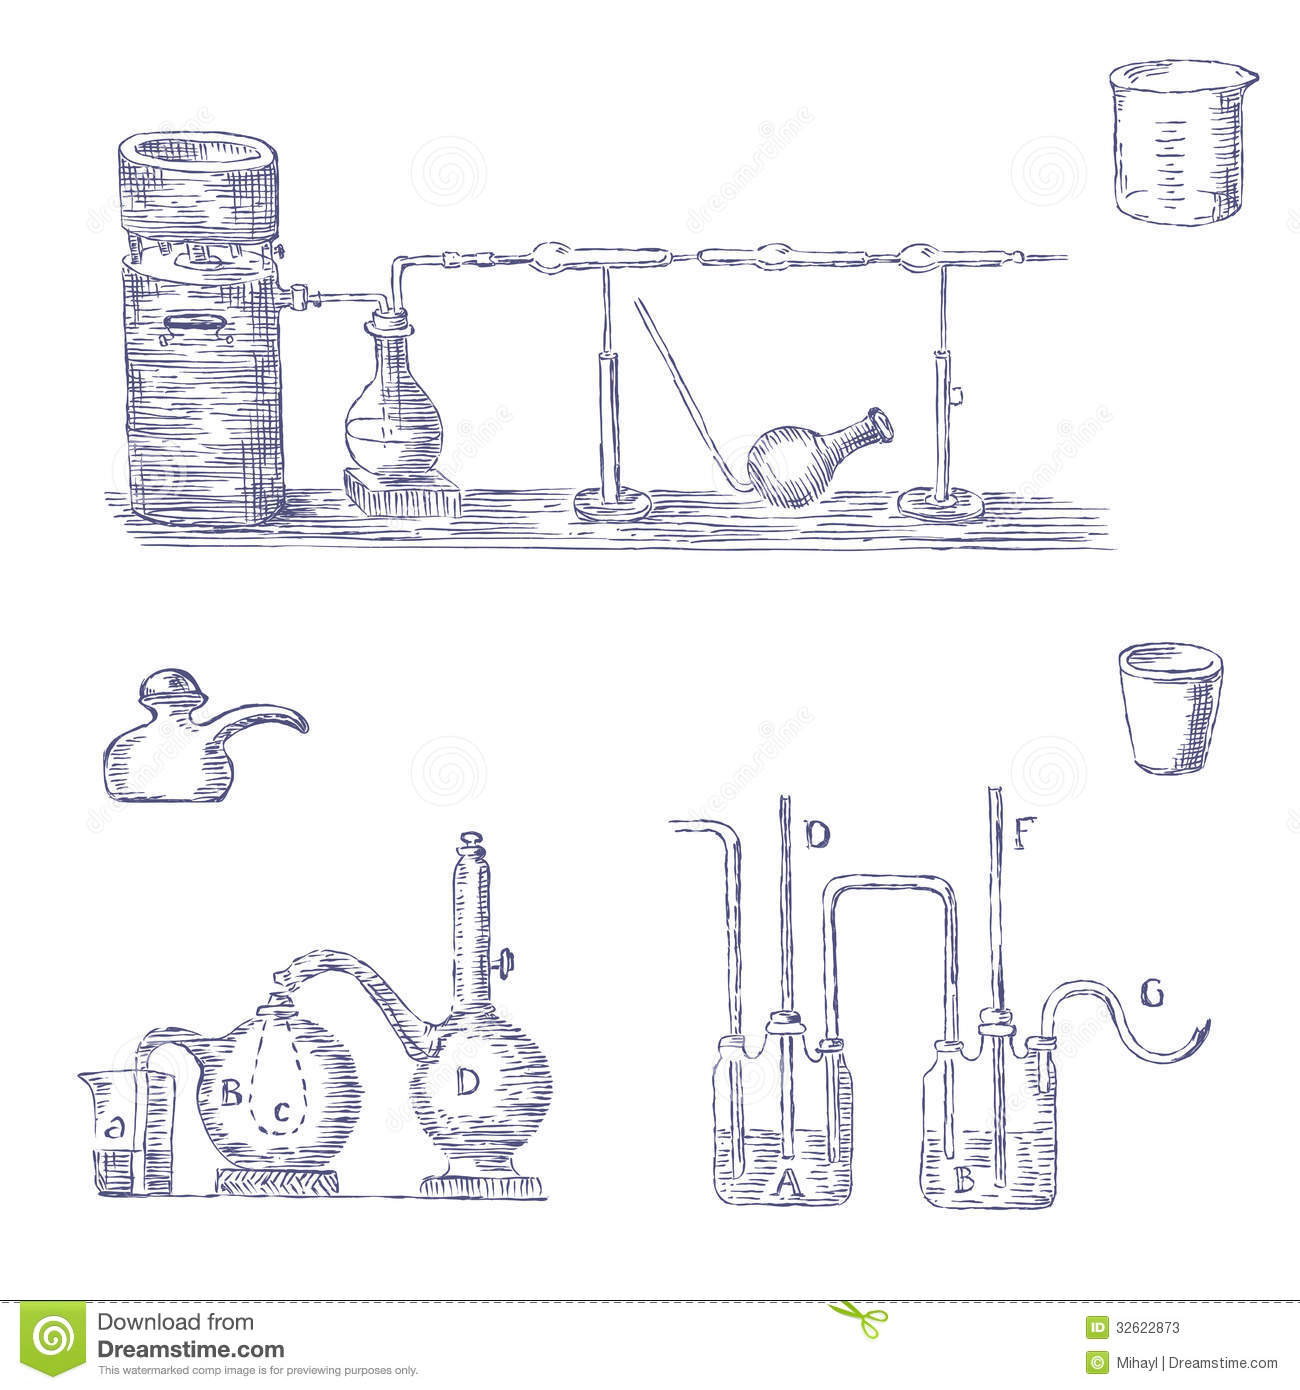 Stock Photos Cartoon Set Chemical Equipment Drawing Ink Pen Image32622873 further Character Story 2  JimmyandFriends Style also Boomerang Theater likewise Stock Vector A Creepy Cartoon Mad Scientist Holds A Test Tube Of Green Bubbly Science additionally Stock Photo Laboratory Thermometer Isolated White Image53275478. on old laboratory cartoon